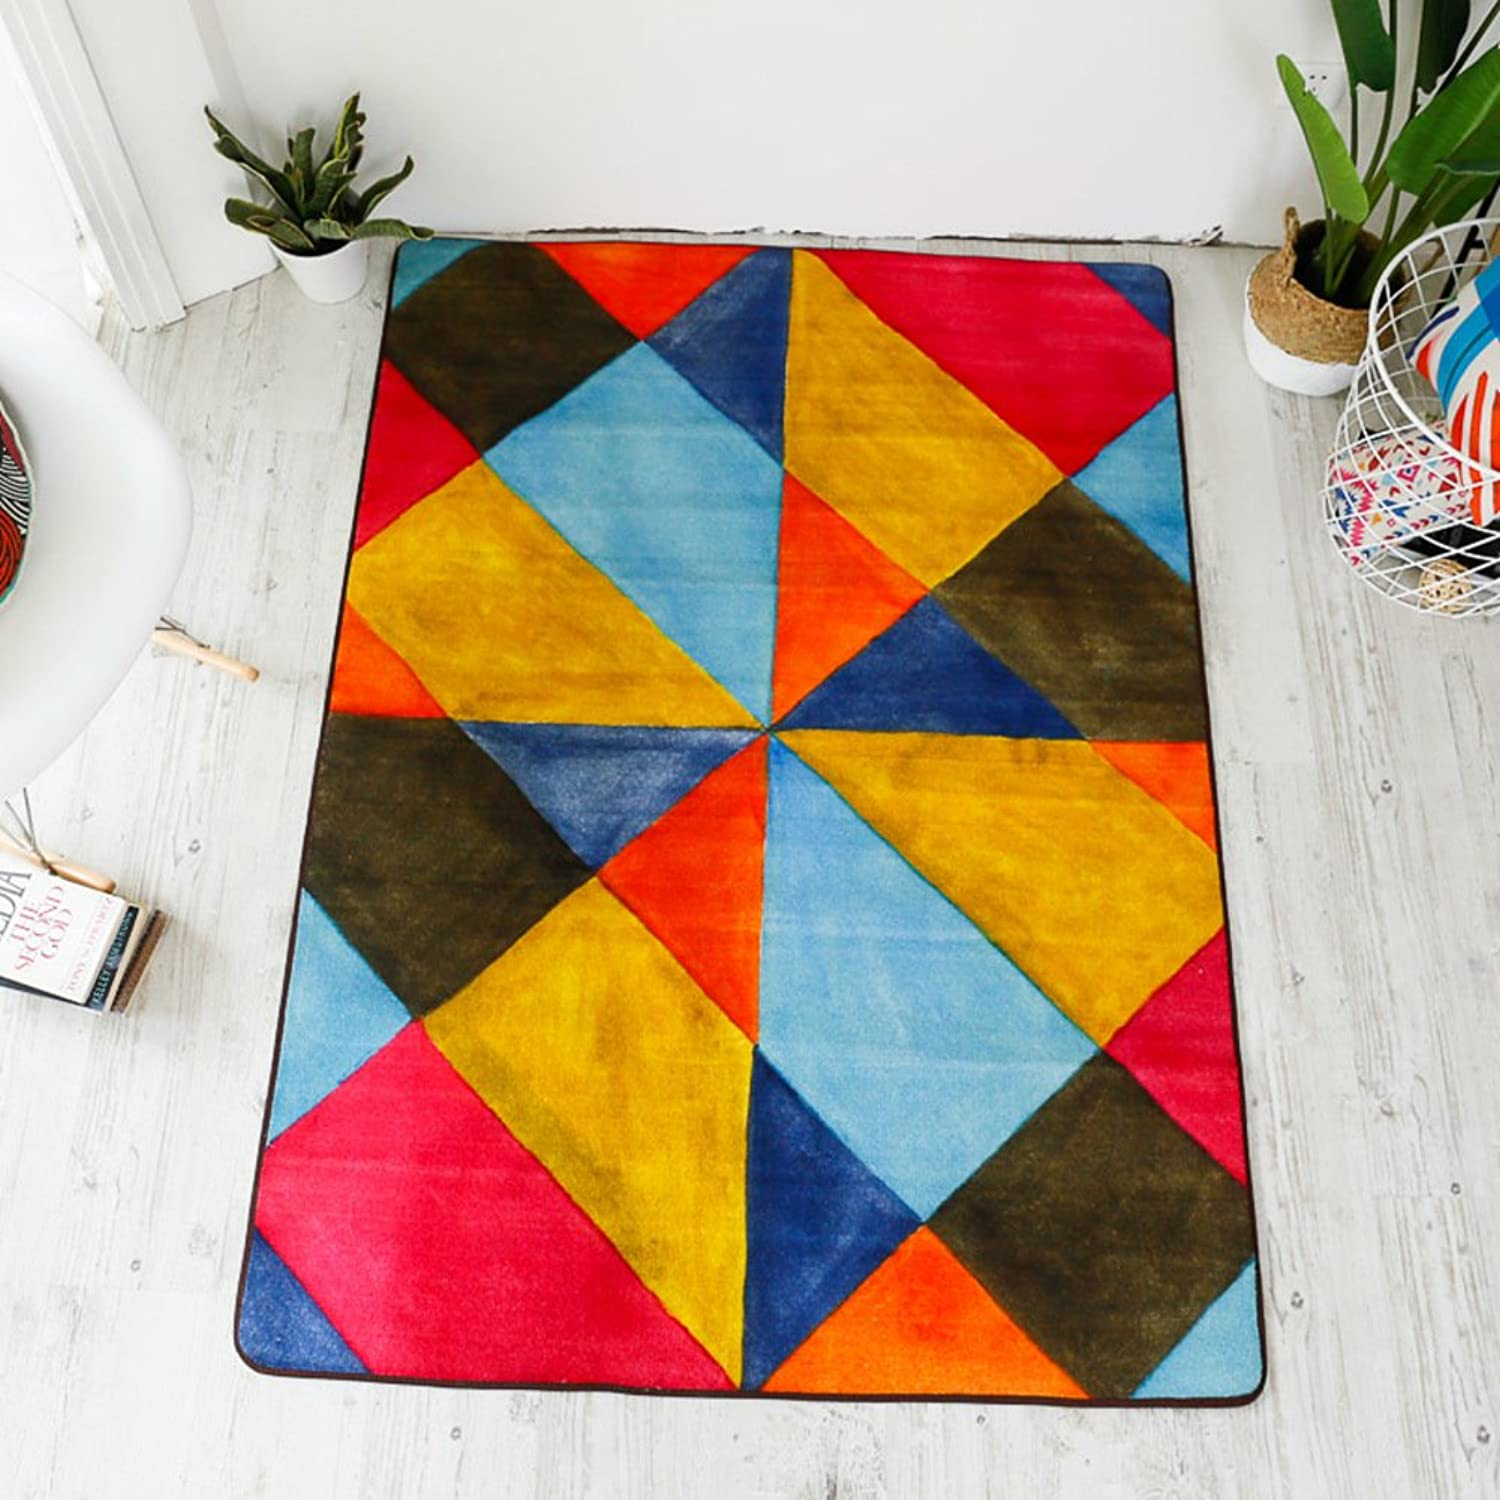 Europe and The Carpet [Geometry],[Splice],color Bump Carpet Living Room,[Study],Bedroom,Bedside Blanket Stair mat-A 120x170cm(47x67inch)